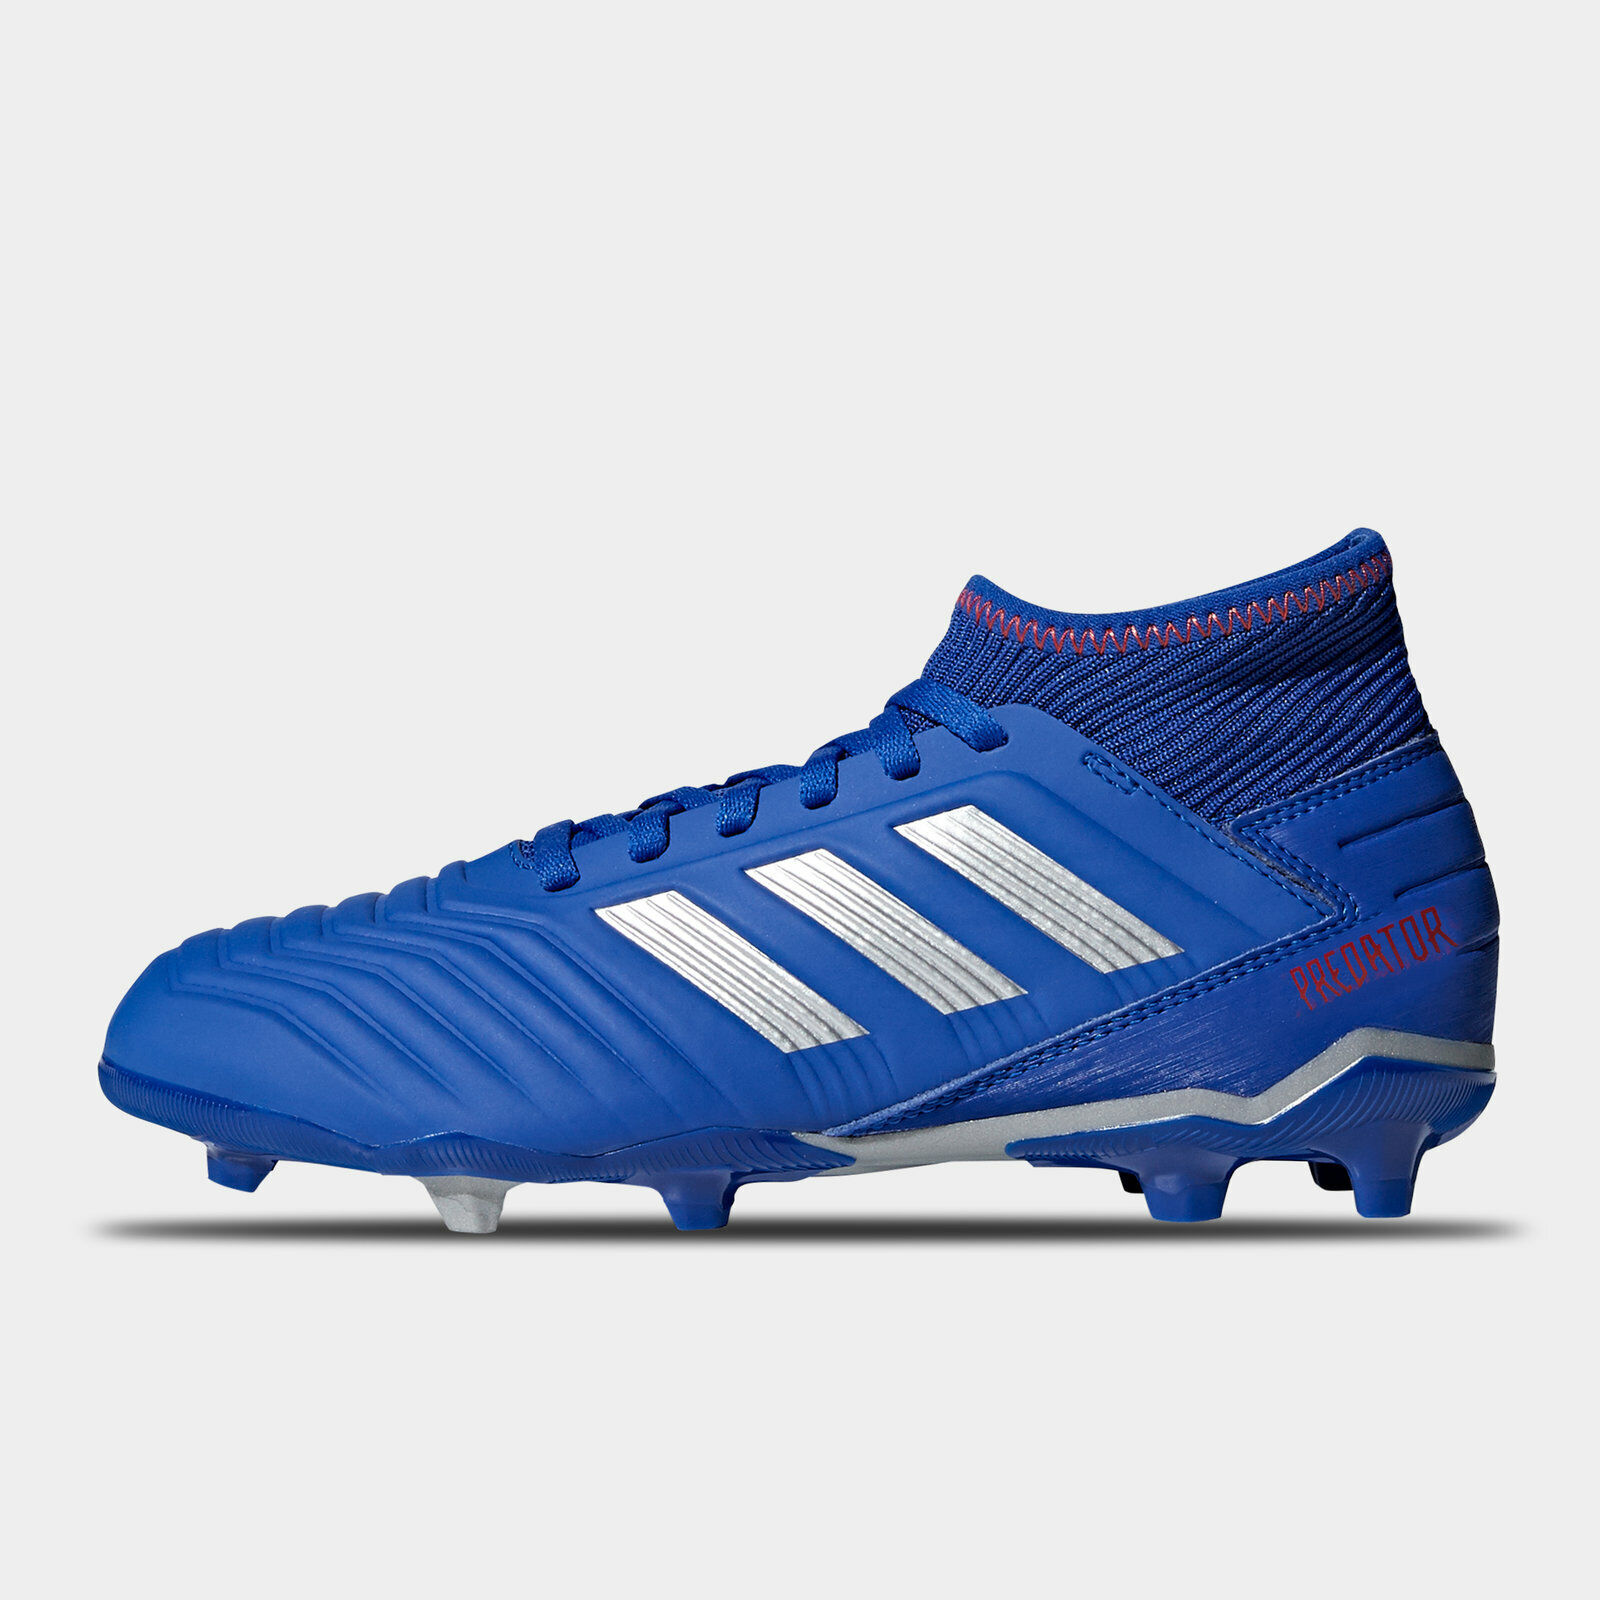 39ac75afd Adidas 19.3 Kids Football Boots Studs Trainers Sports shoes bluee Predator  FG noetob3482-Boys  Shoes